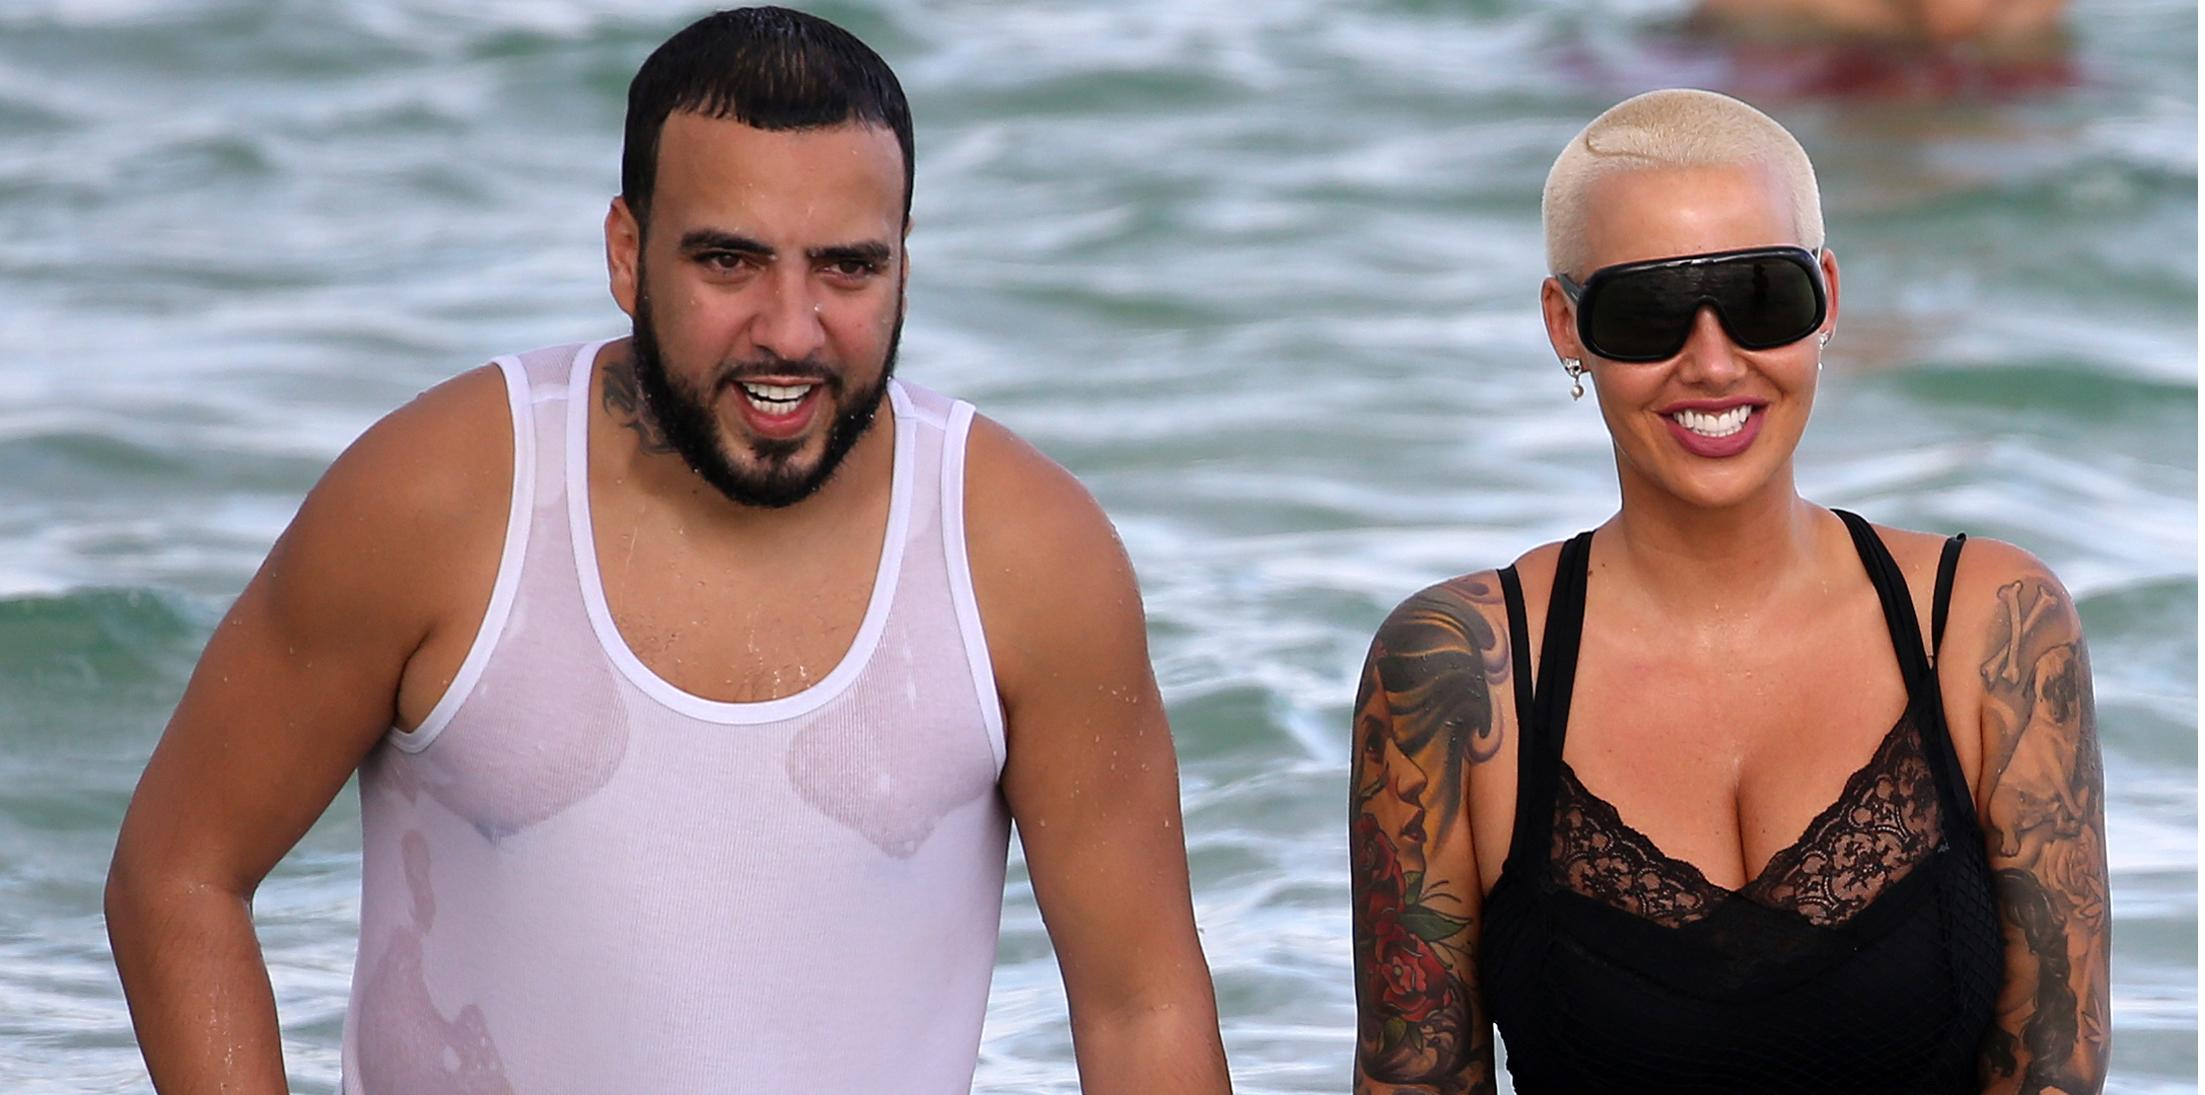 Amber Rose Wearing a Black one Piece on the Beach With Rumored new Boyfriend French Montana in Miami